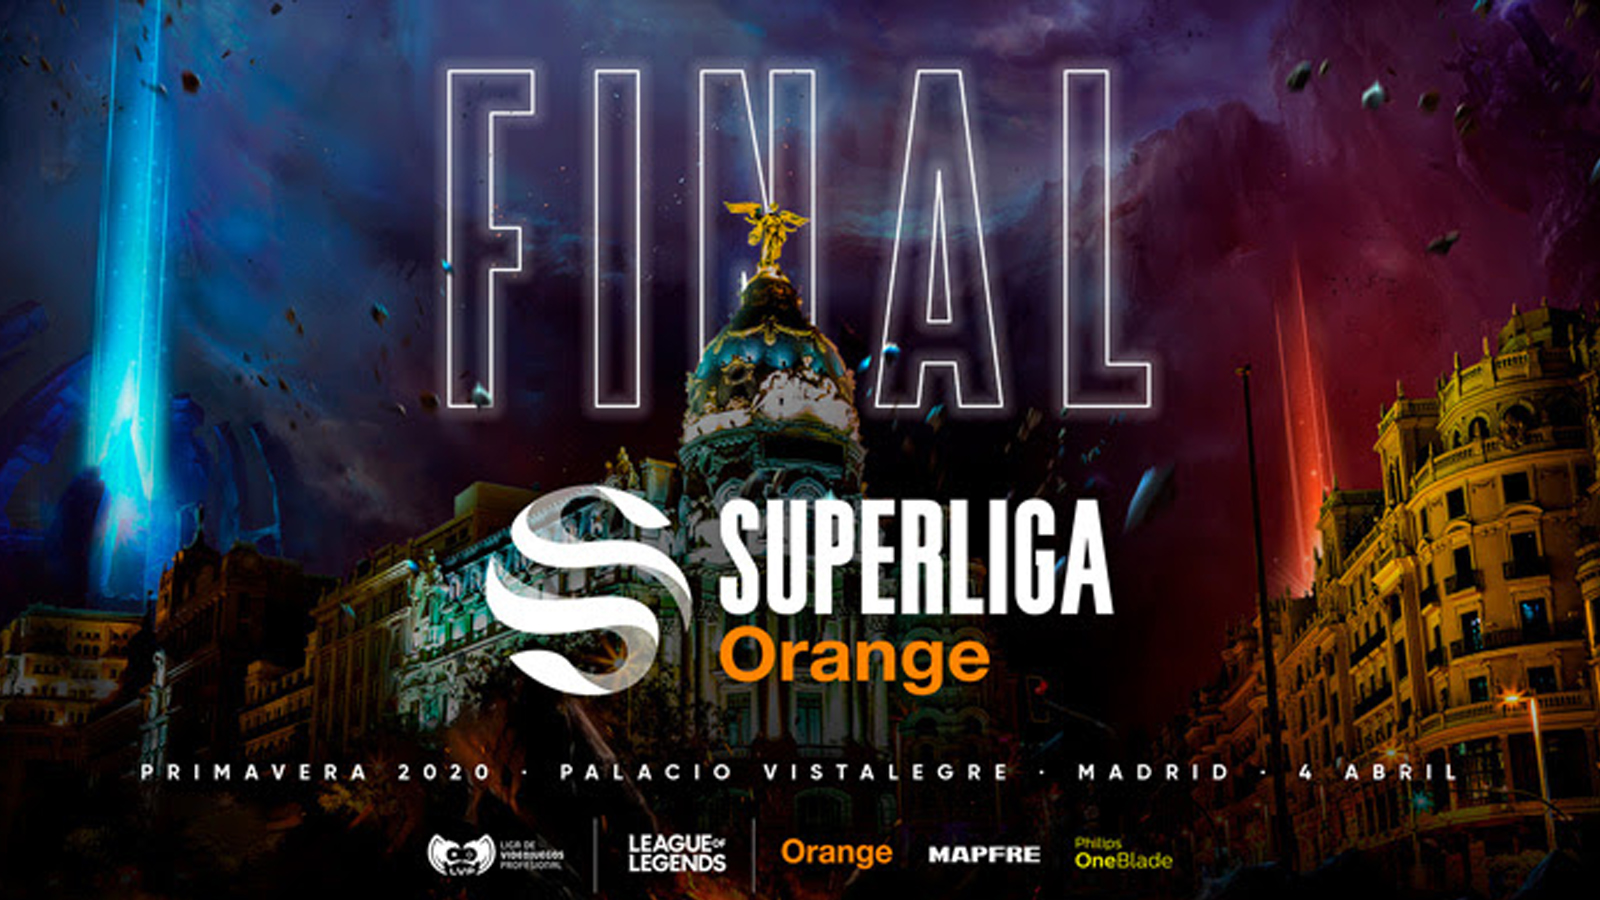 portada final superliga orange vistalegre